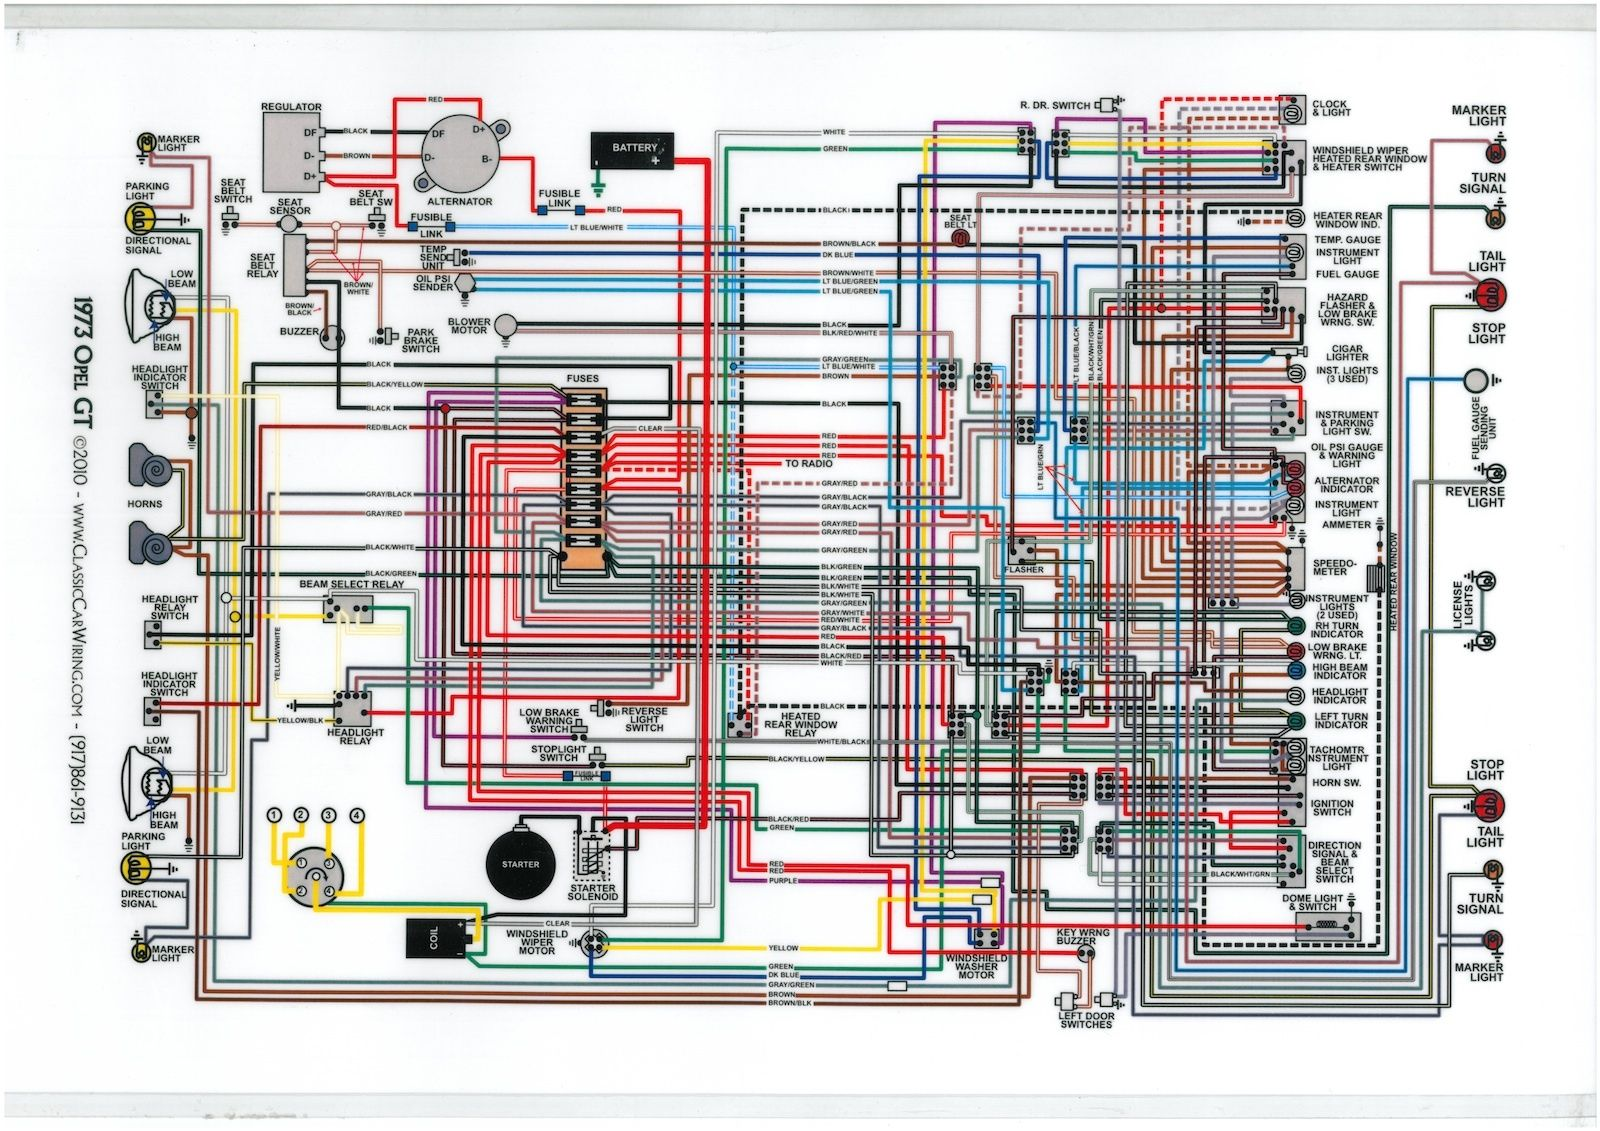 Vauxhall Astra Mk5 Stereo Wiring Diagram How Net Framework Works Saturn Engineering Library